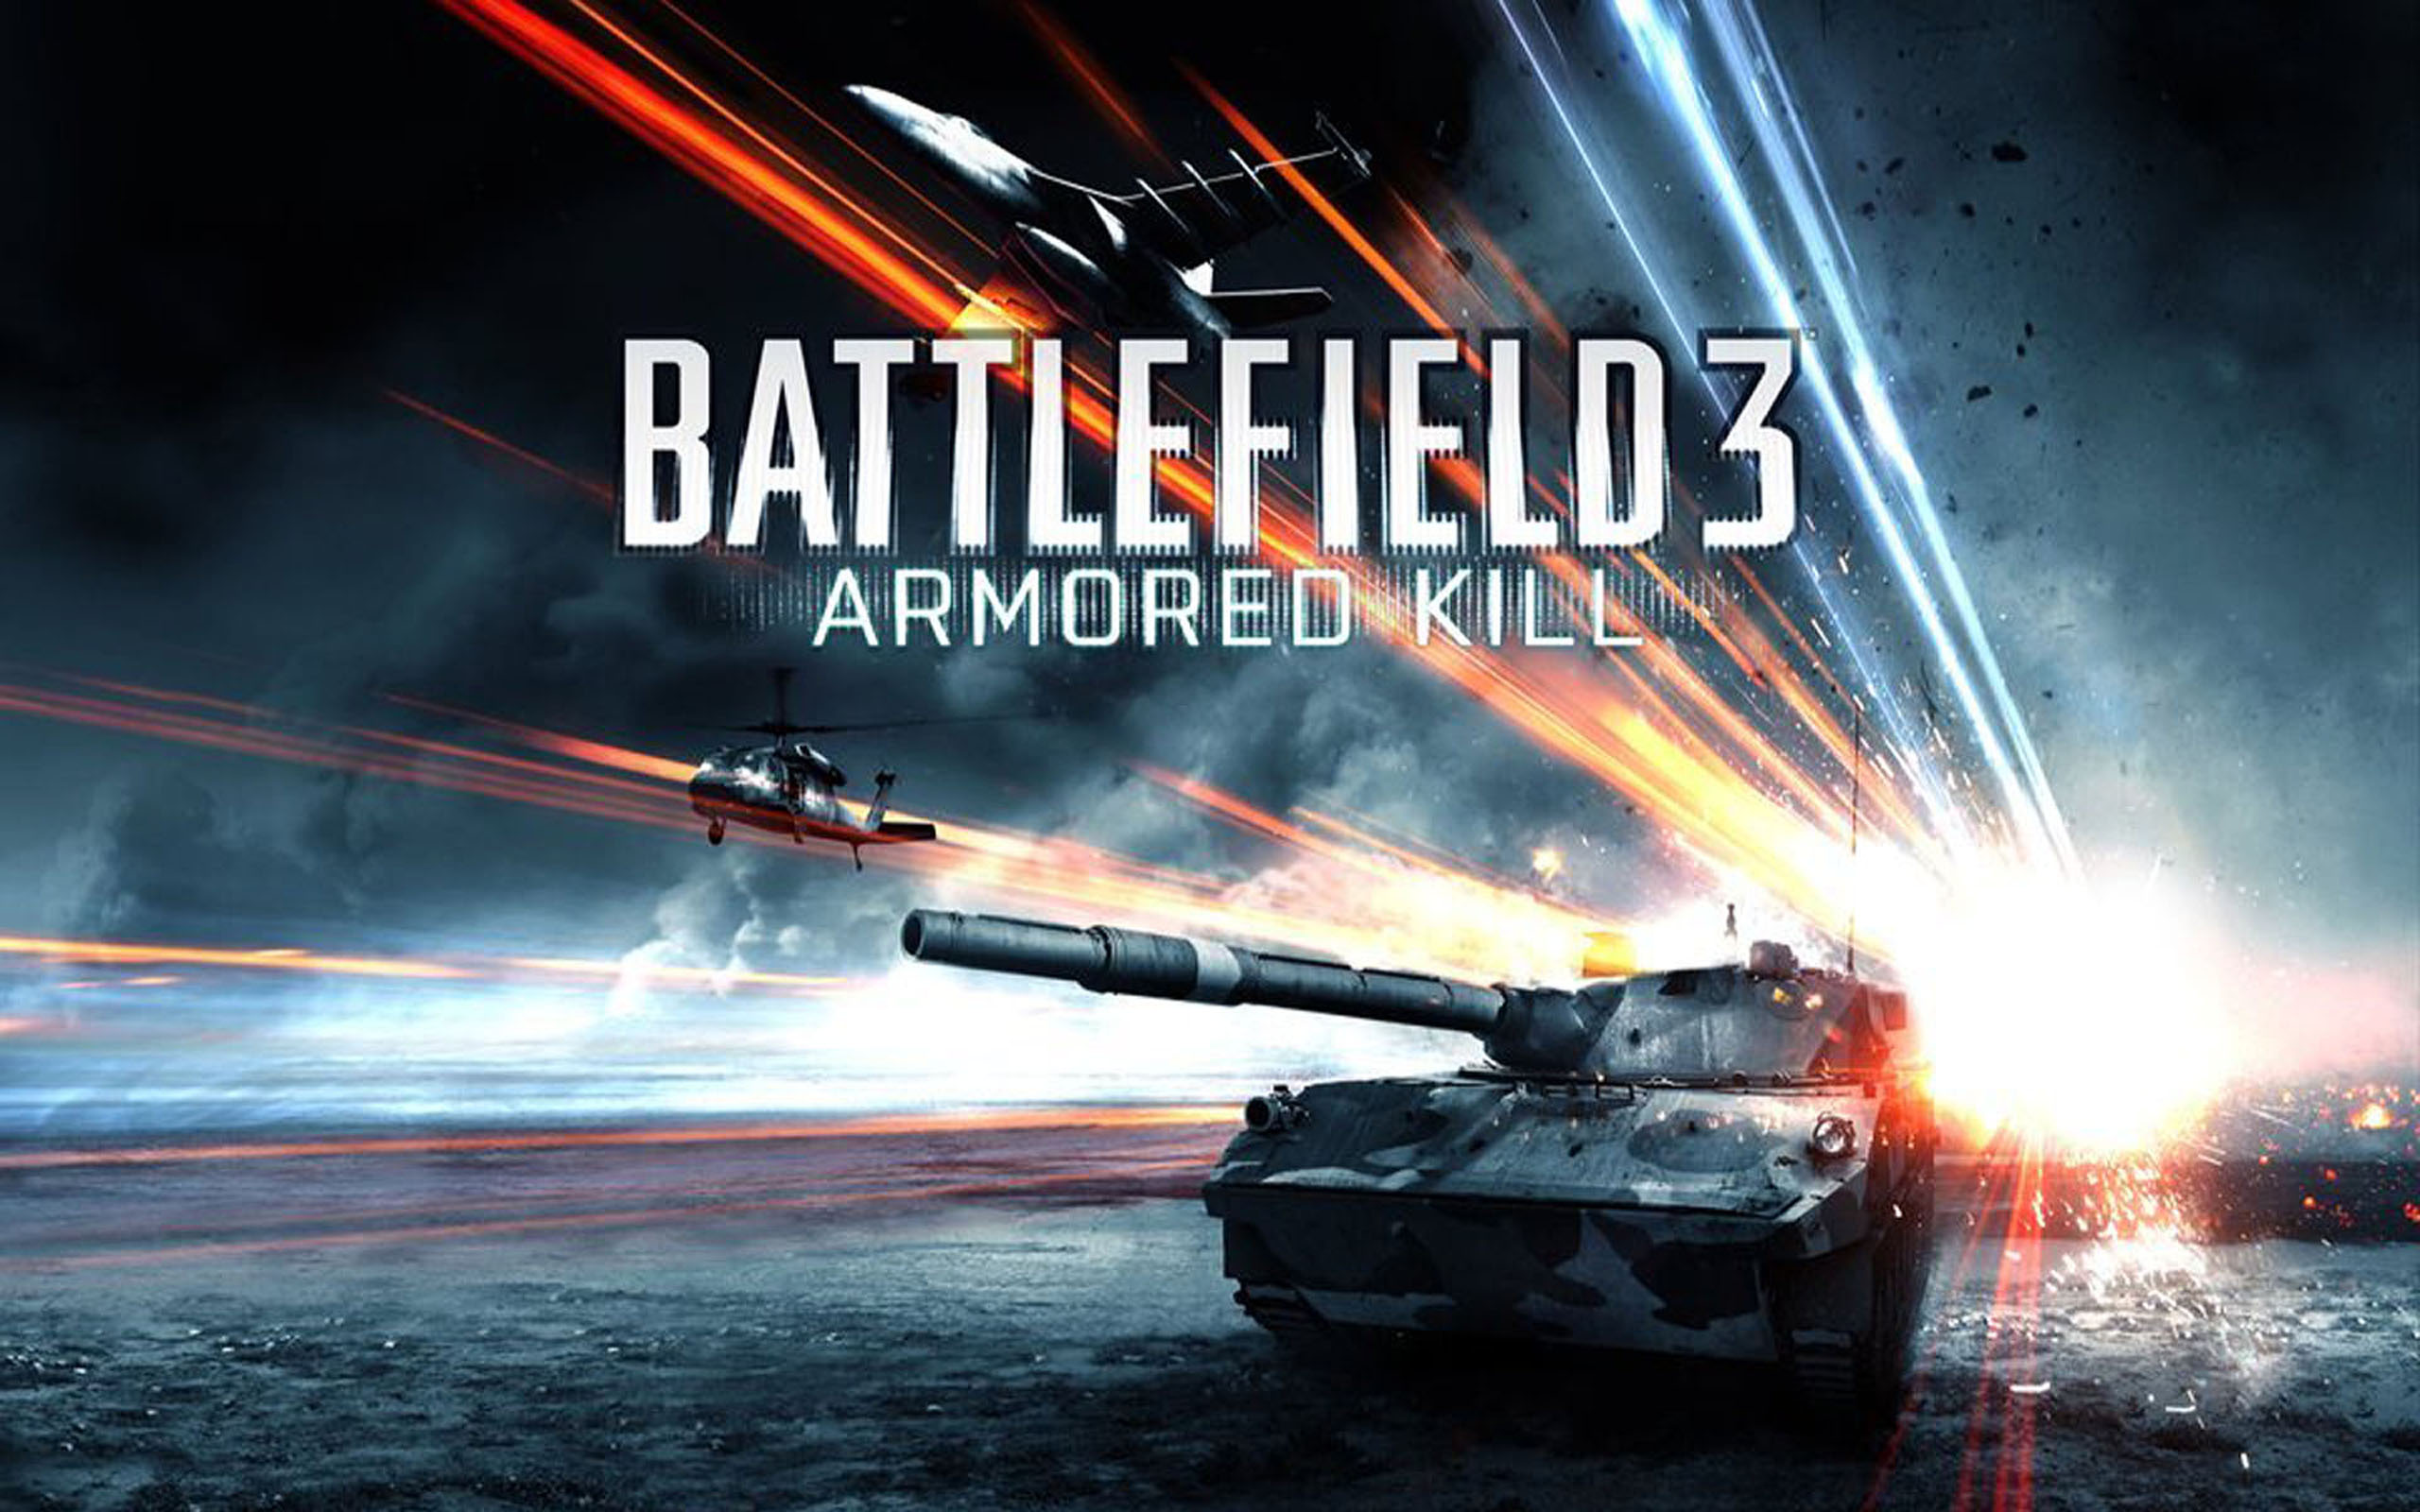 Battlefield 3 Armored Kill 957.96 Kb